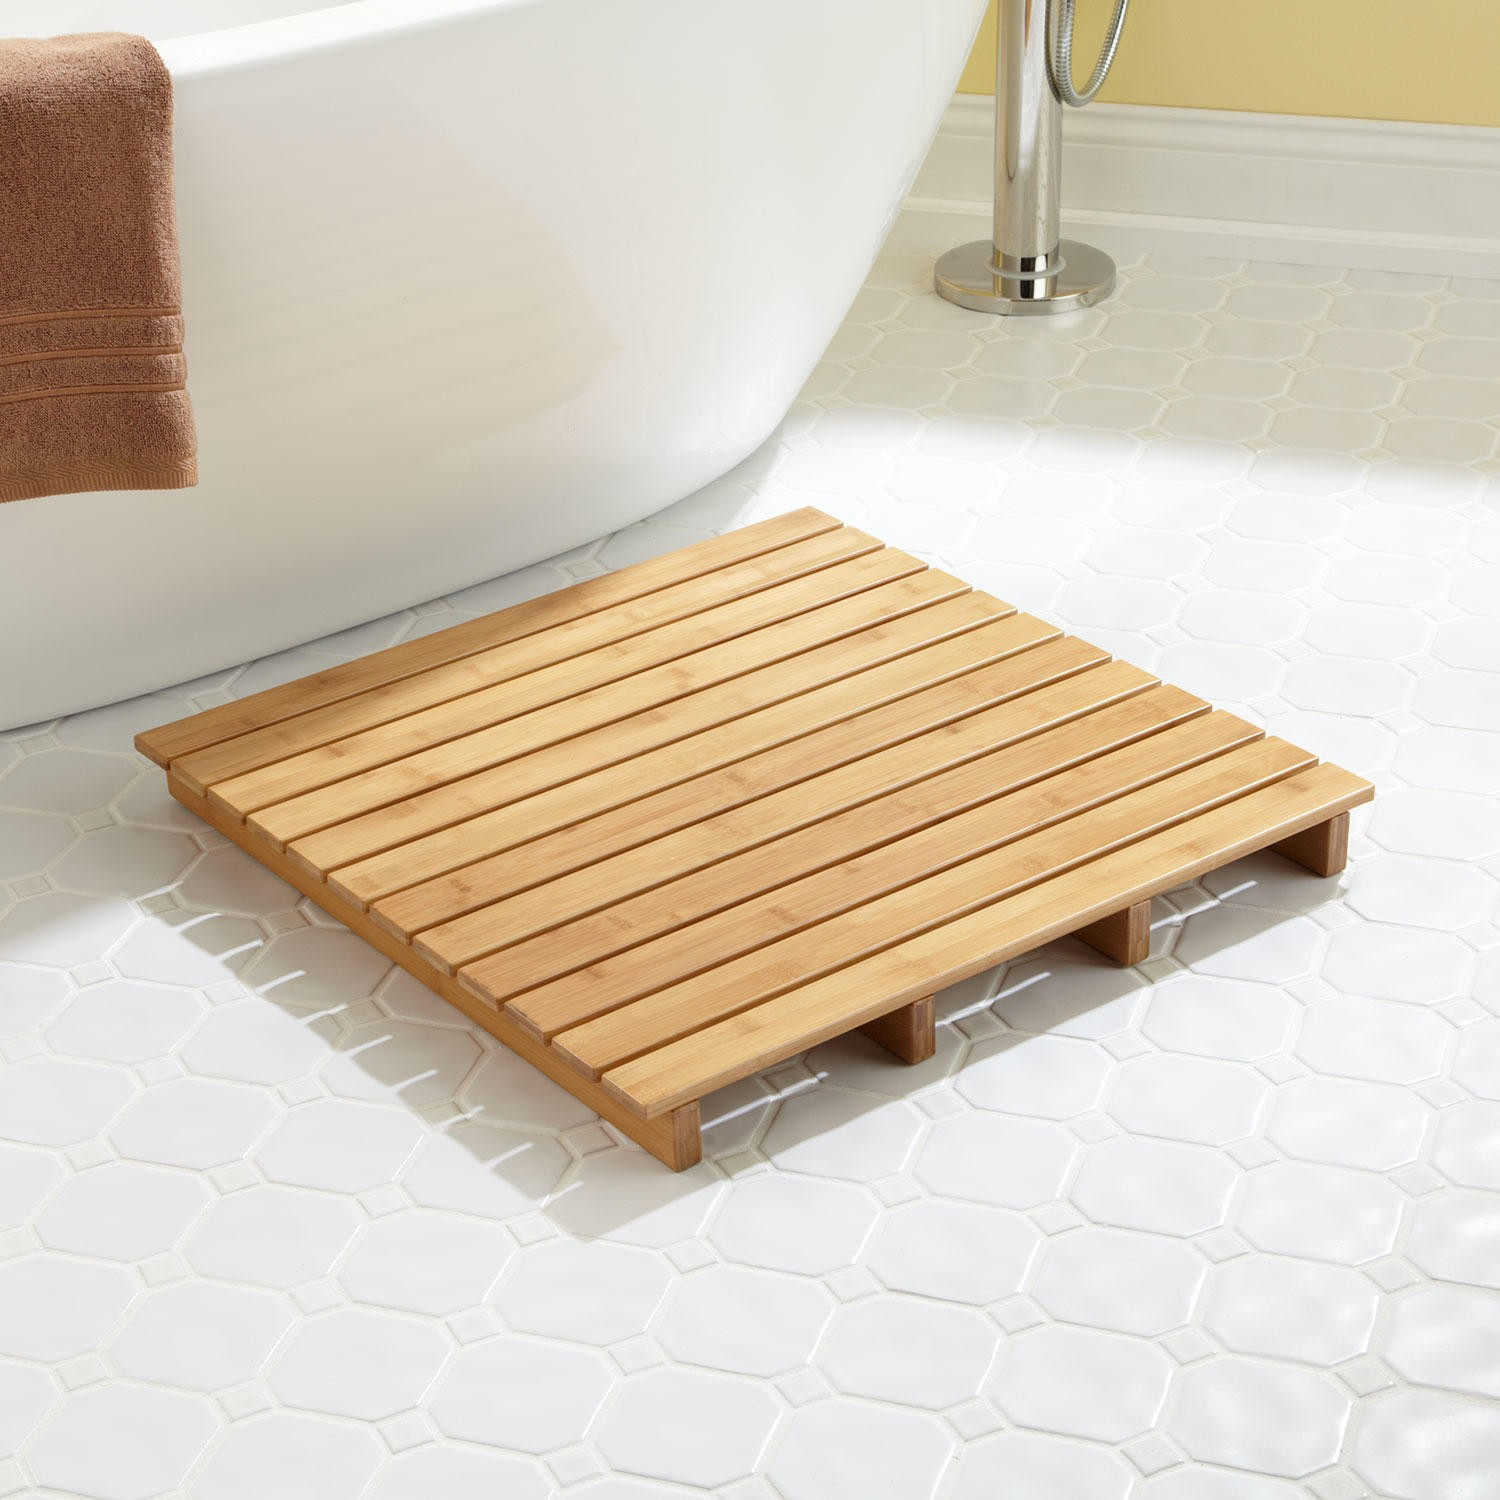 Bath Mat Ideas To Make Your Bathroom Feel More Like A Spa - Gray and white bath mat for bathroom decorating ideas